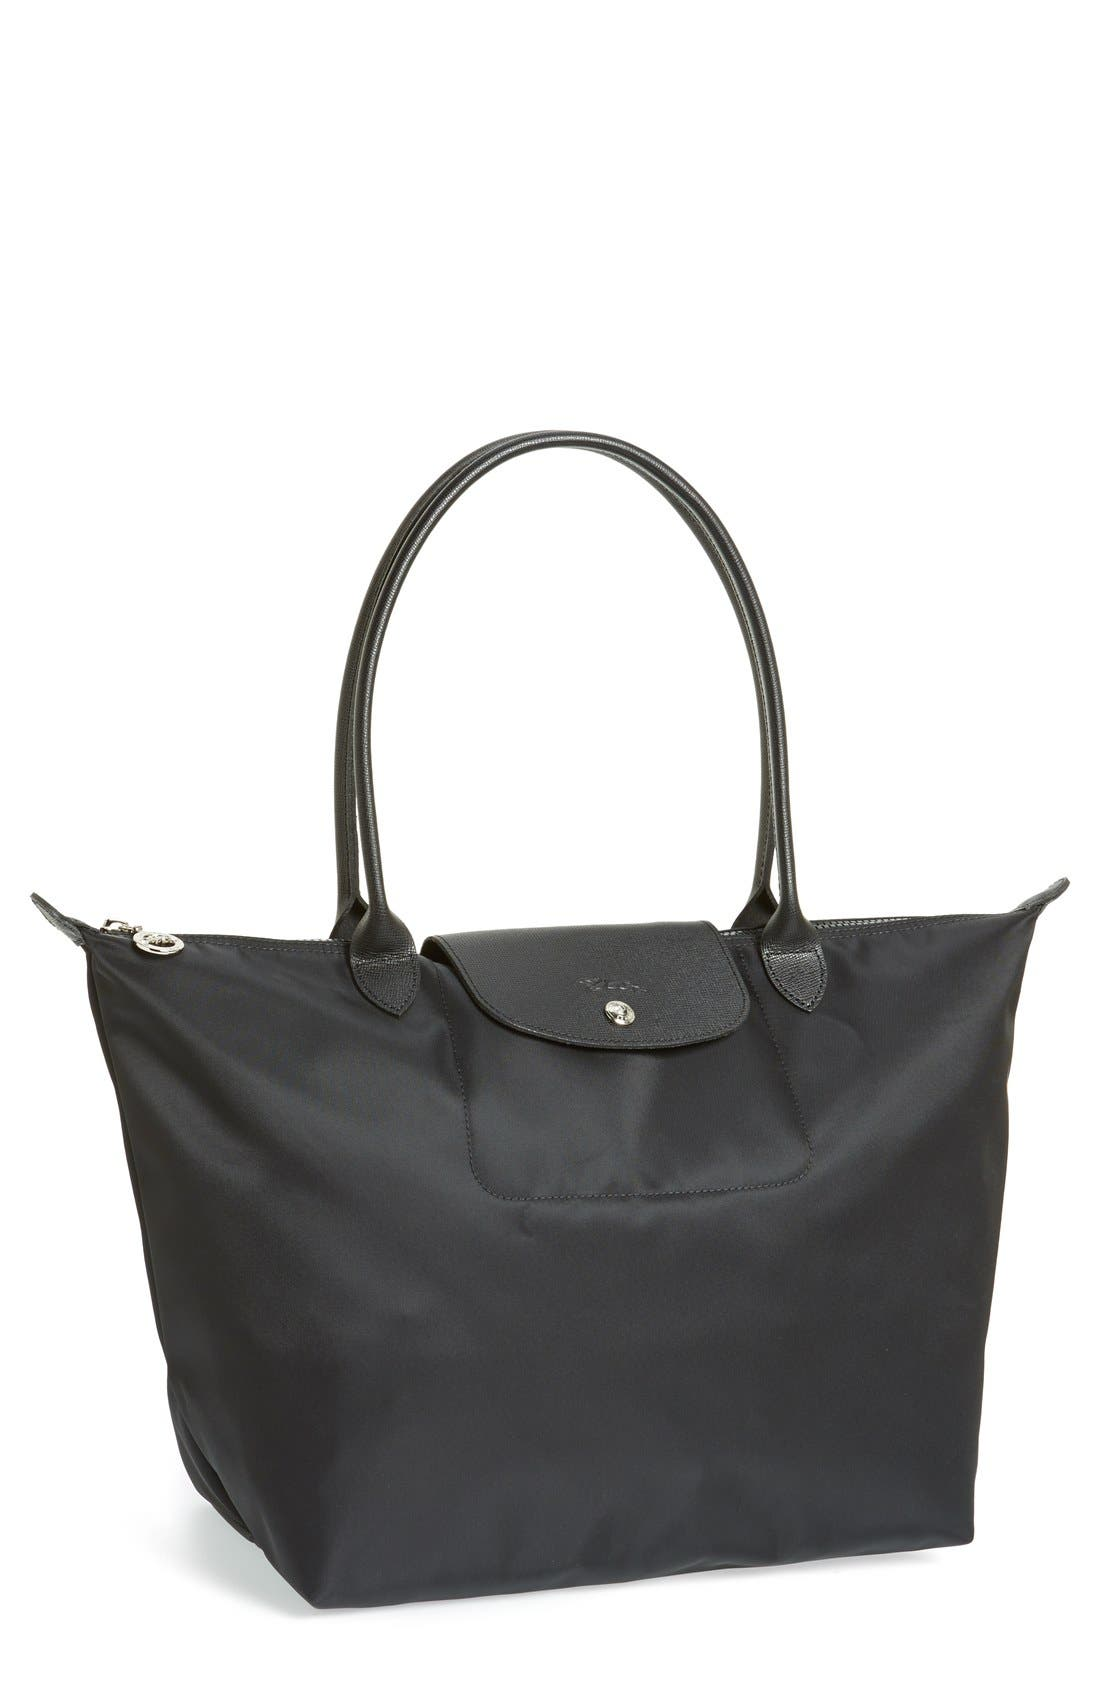 LONGCHAMP, 'Large Le Pliage Neo' Nylon Tote, Main thumbnail 1, color, BLACK